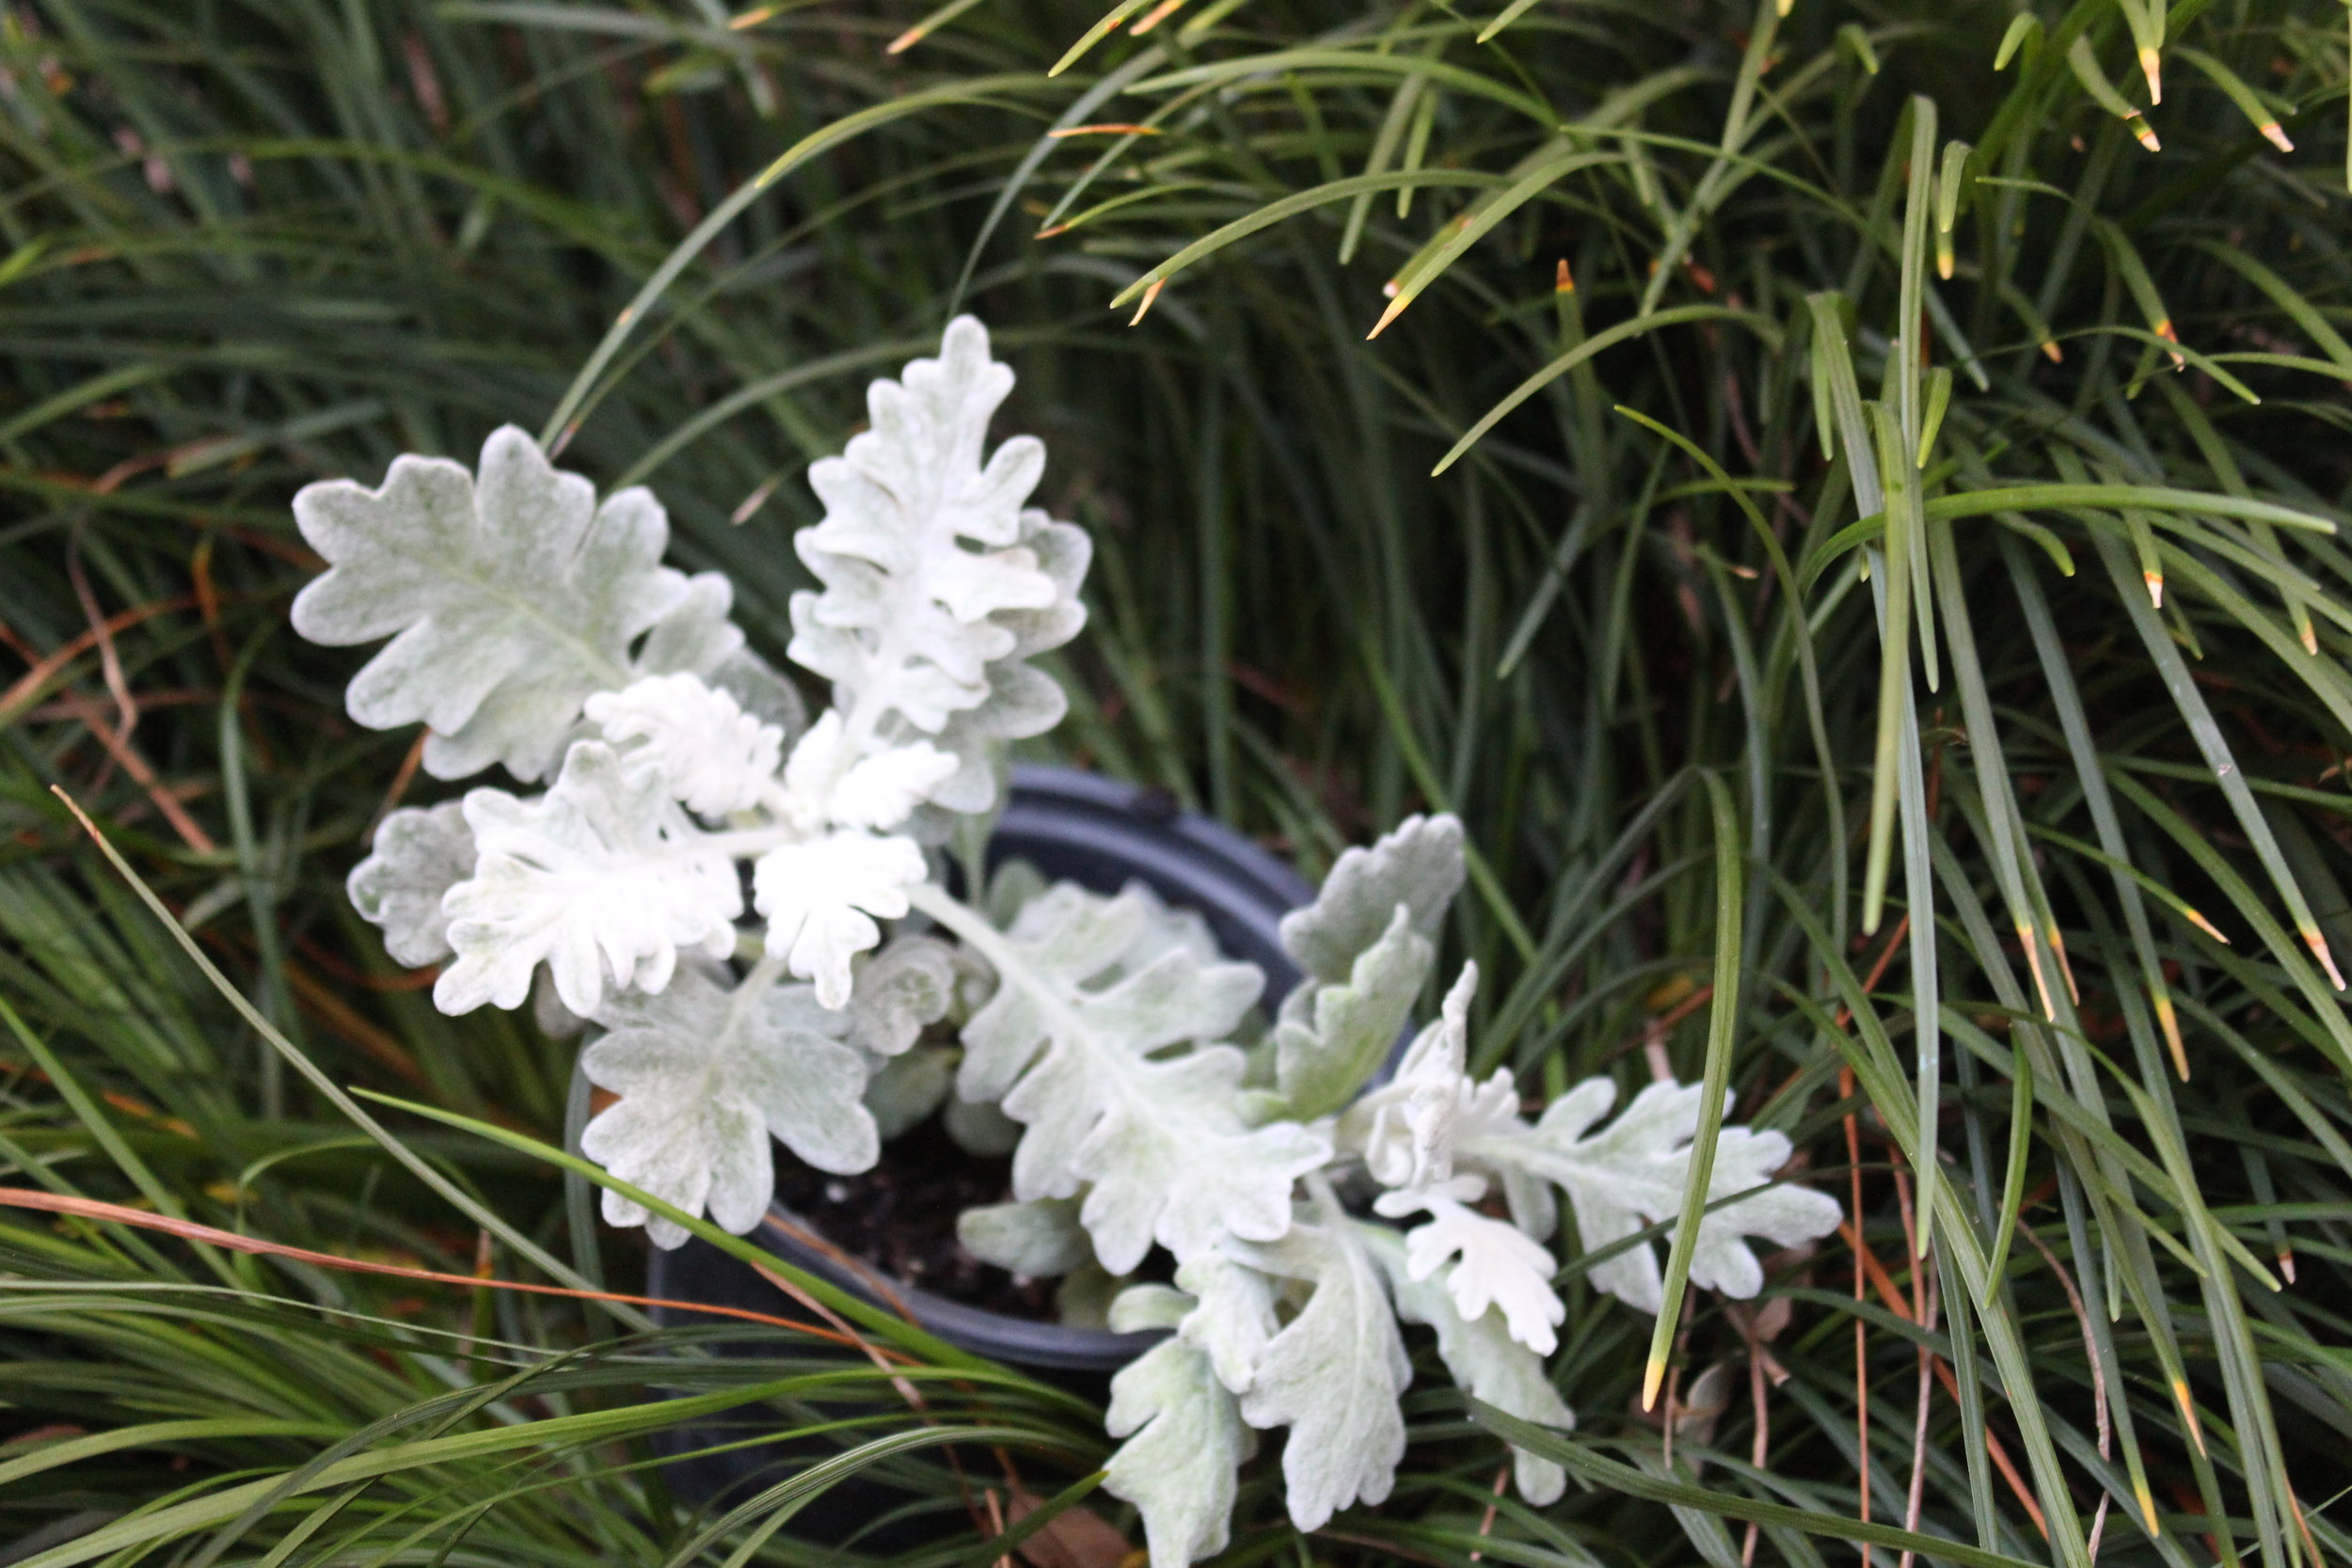 Dusty Miller is a great accent foliage plant for fall arrangements complementing the bright colors of pansies, mums, or petunias. Use it with flowering annuals and perennials in sunny areas or as an accent plant in containers, It mixes well with other annuals.